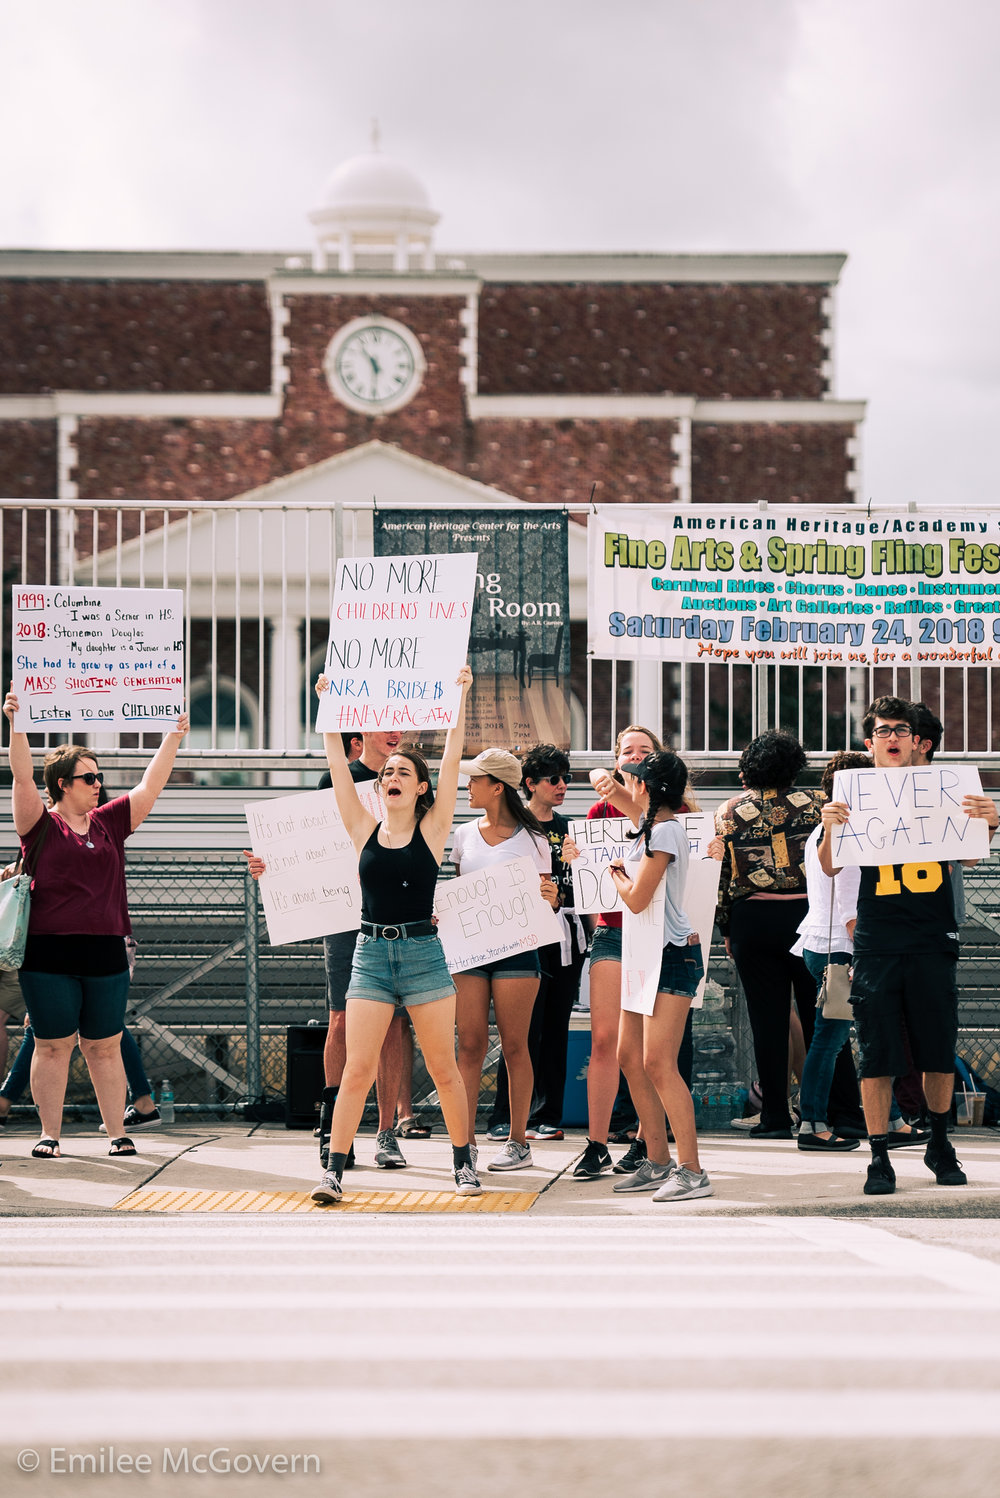 Marjory Stoneman Douglas School shooting never again-1.jpg